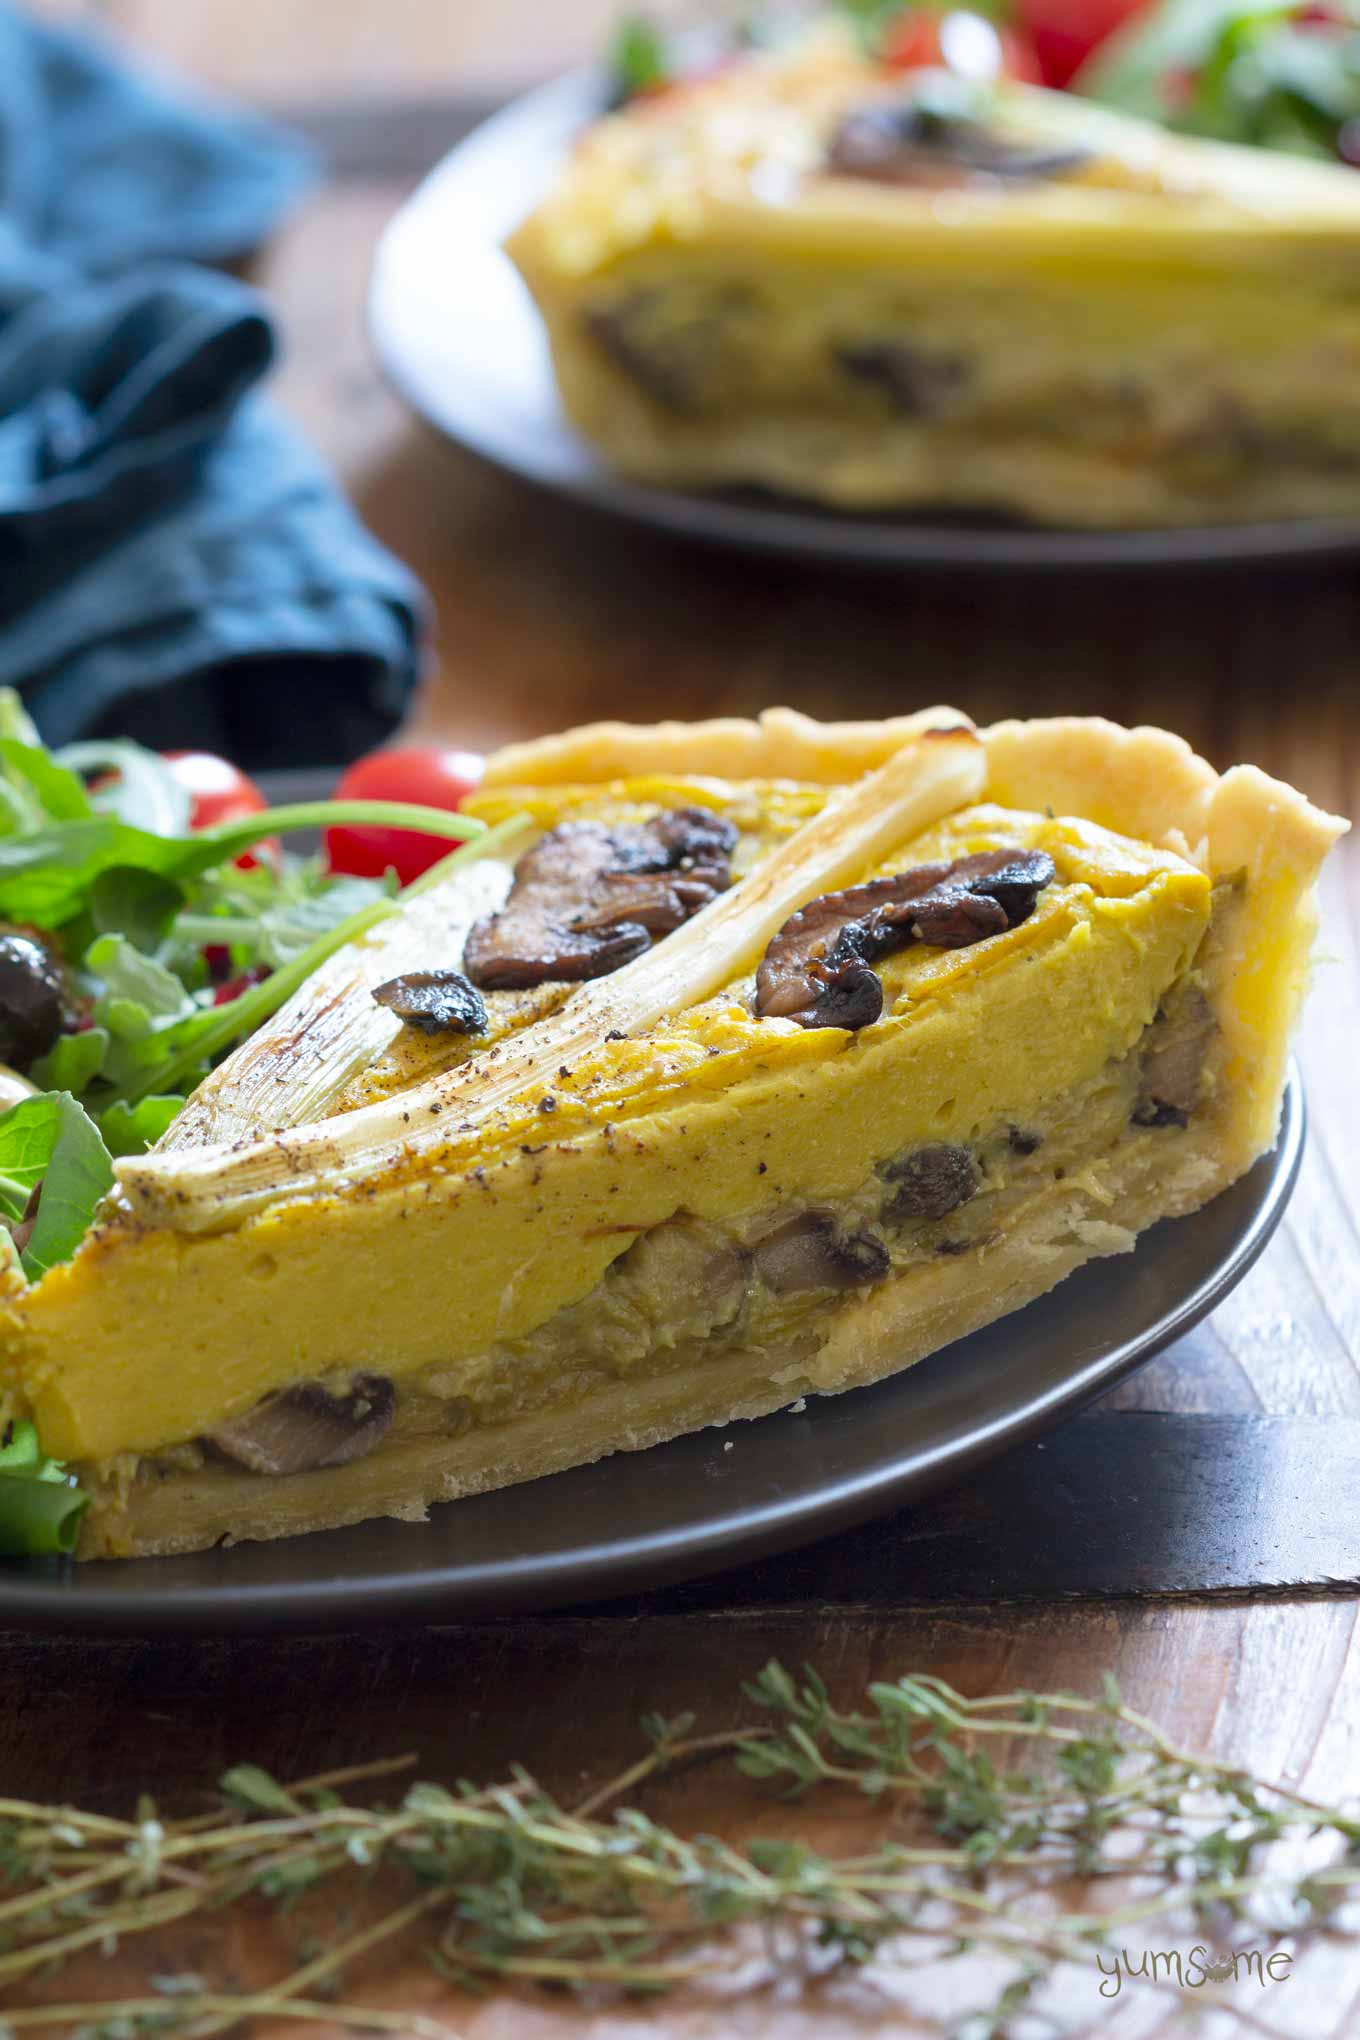 A wedge of mushroom and leek quiche on a black plate.